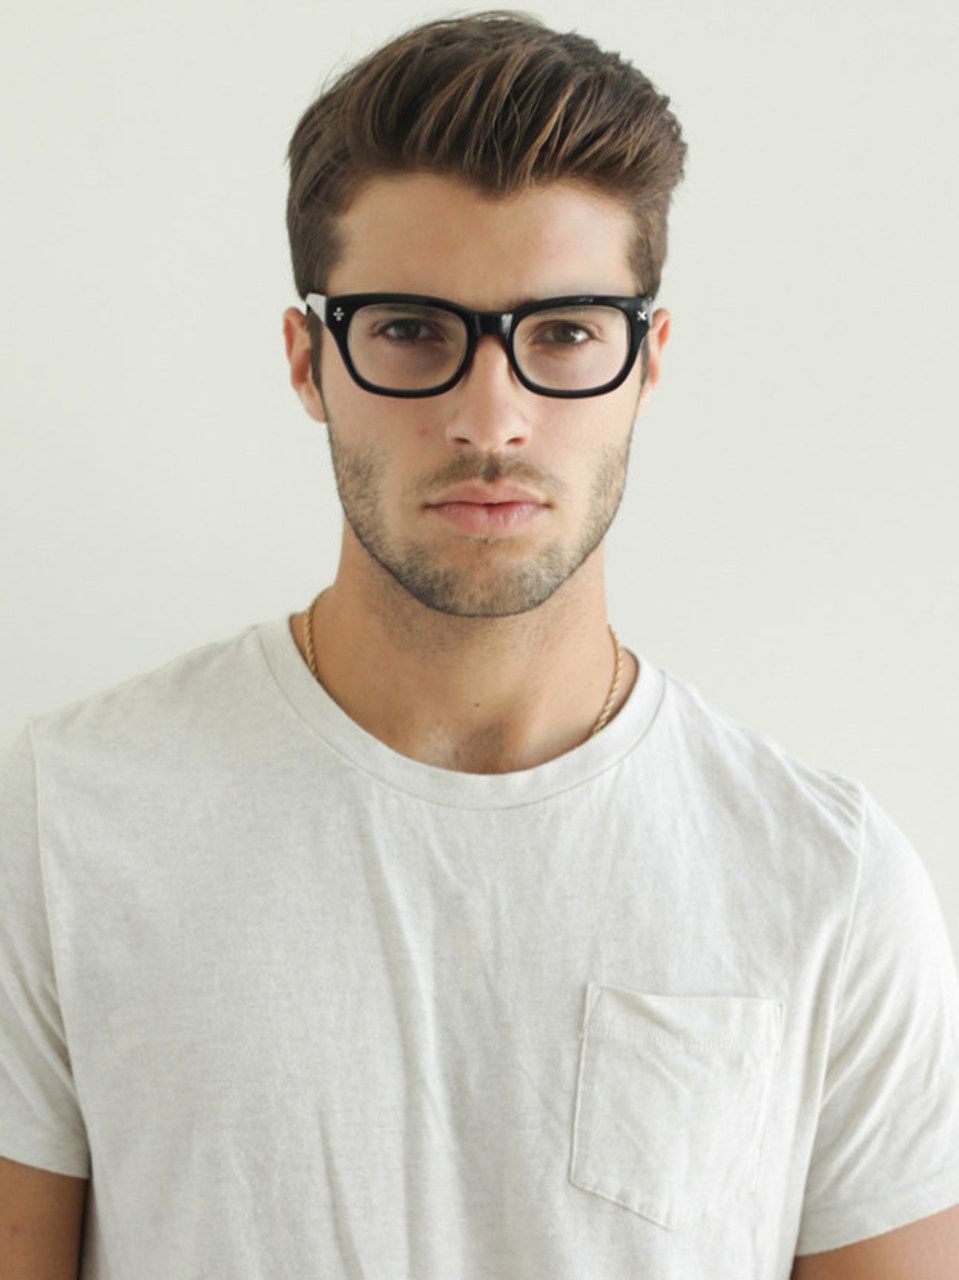 Mens Hairstyles With Glasses Trend Jejaka Hipster 2015ada Bran Maskulin15 Highlight